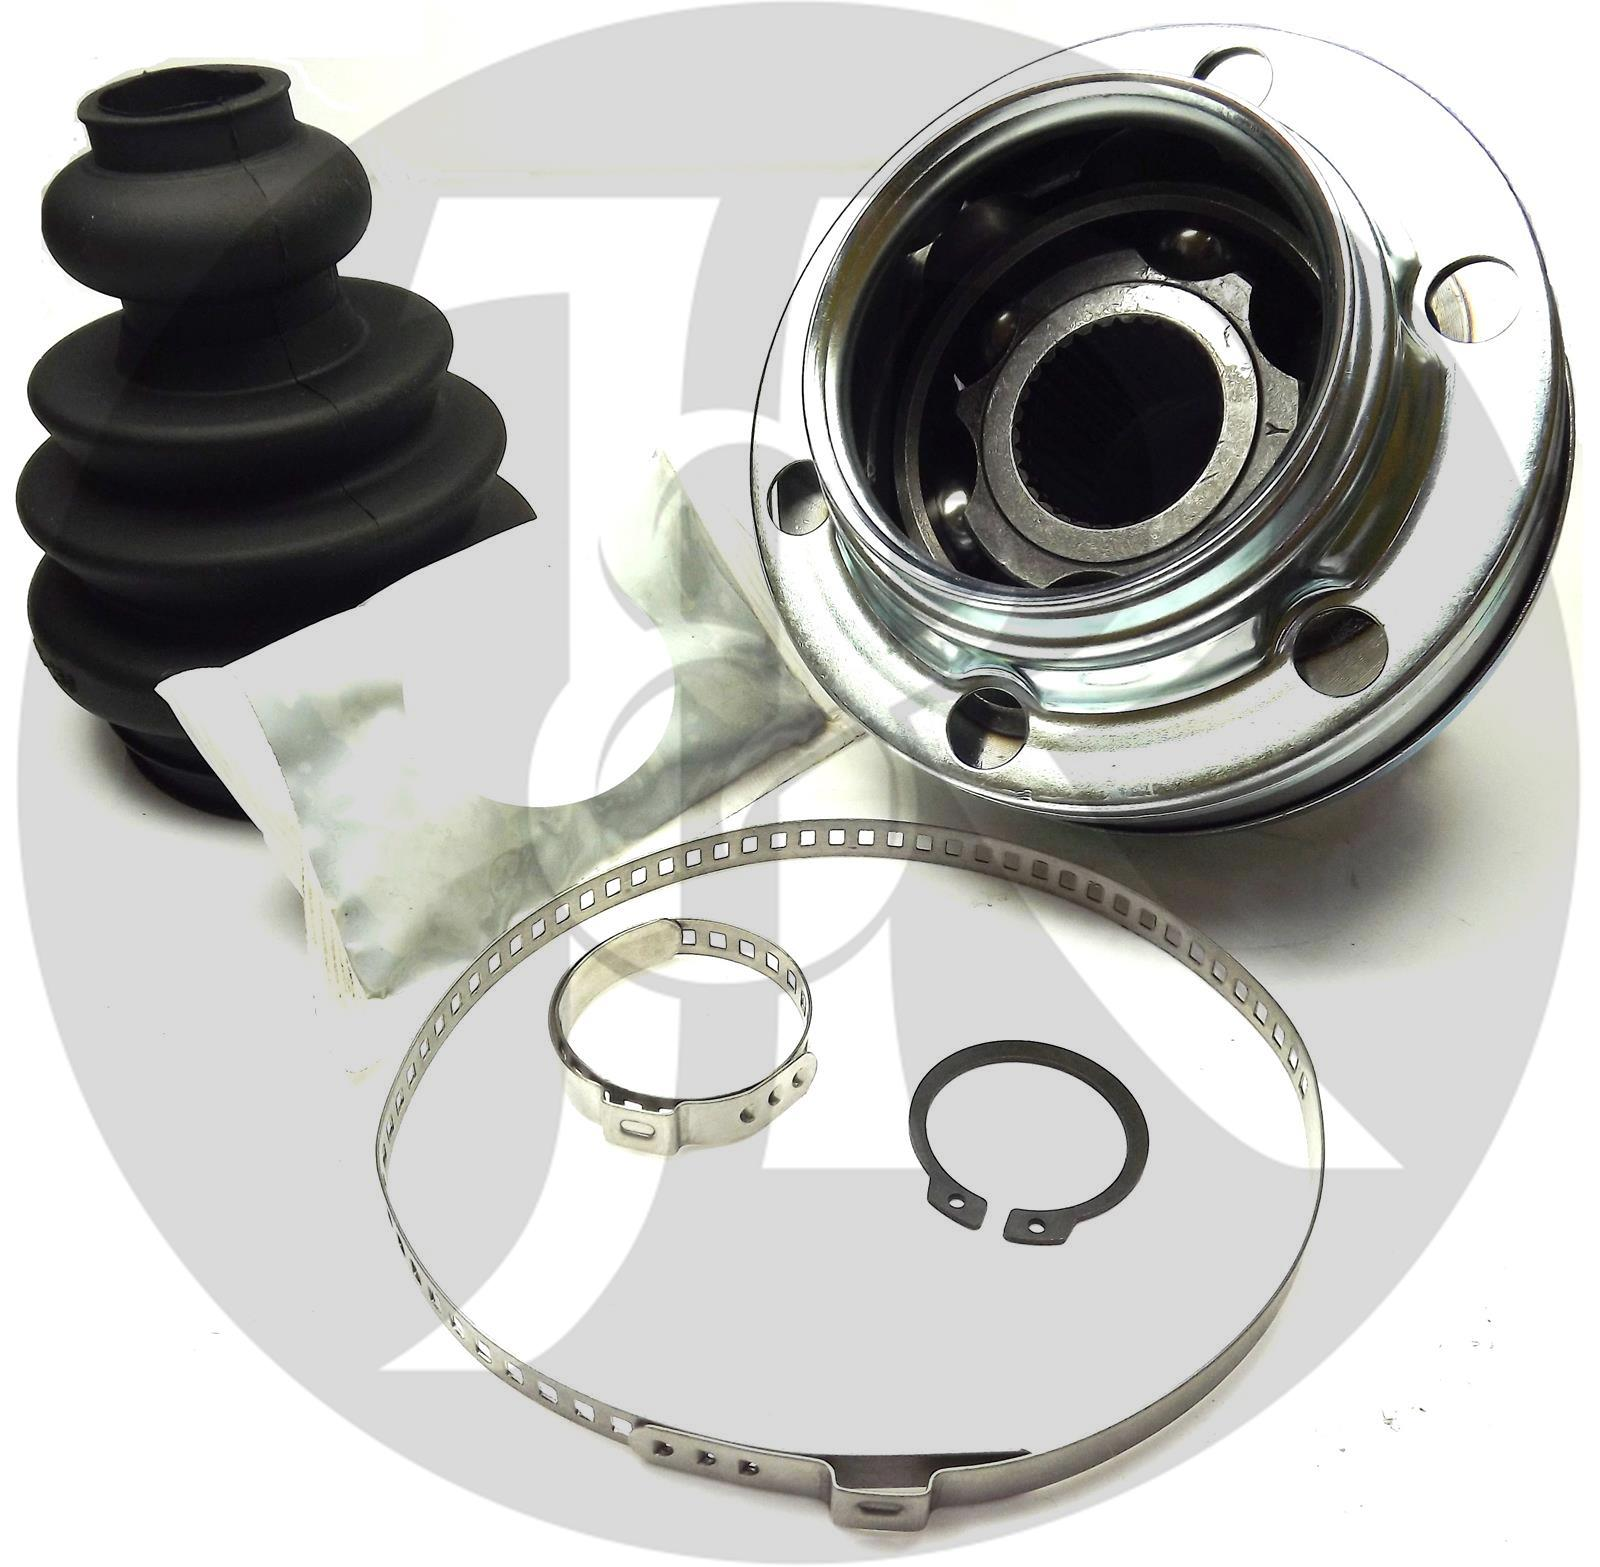 MERCEDES VITO 2.3 HUB NUT /& CV JOINT BOOT KIT DRIVESHAFT BOOTKIT-GAITER 96/>1999